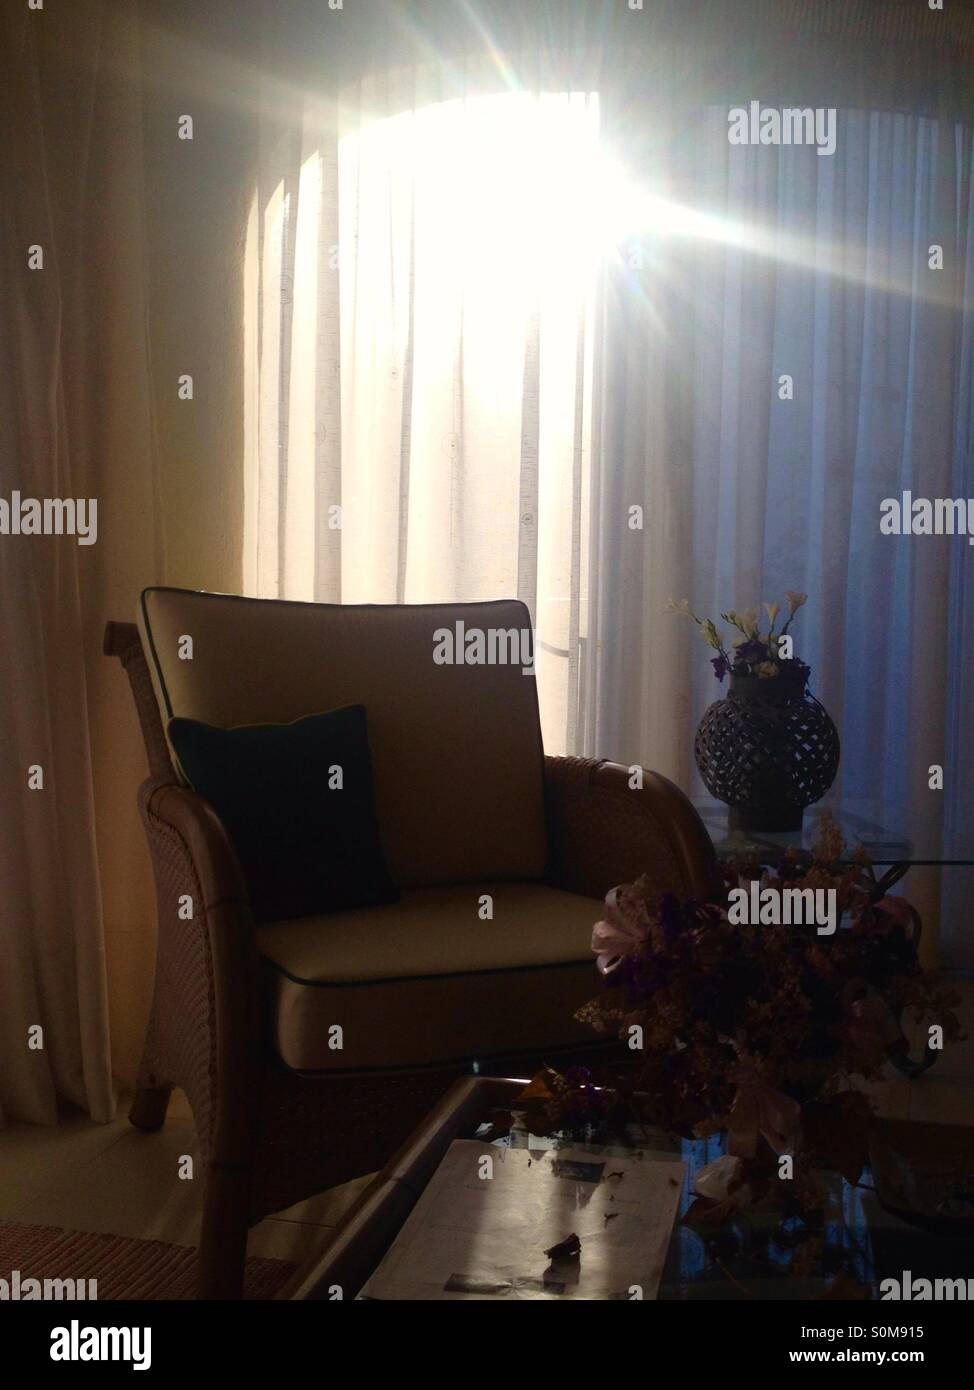 The passing of time. Chair backlit from golden sun shining through opaque curtain onto table with decaying flowers - Stock Image